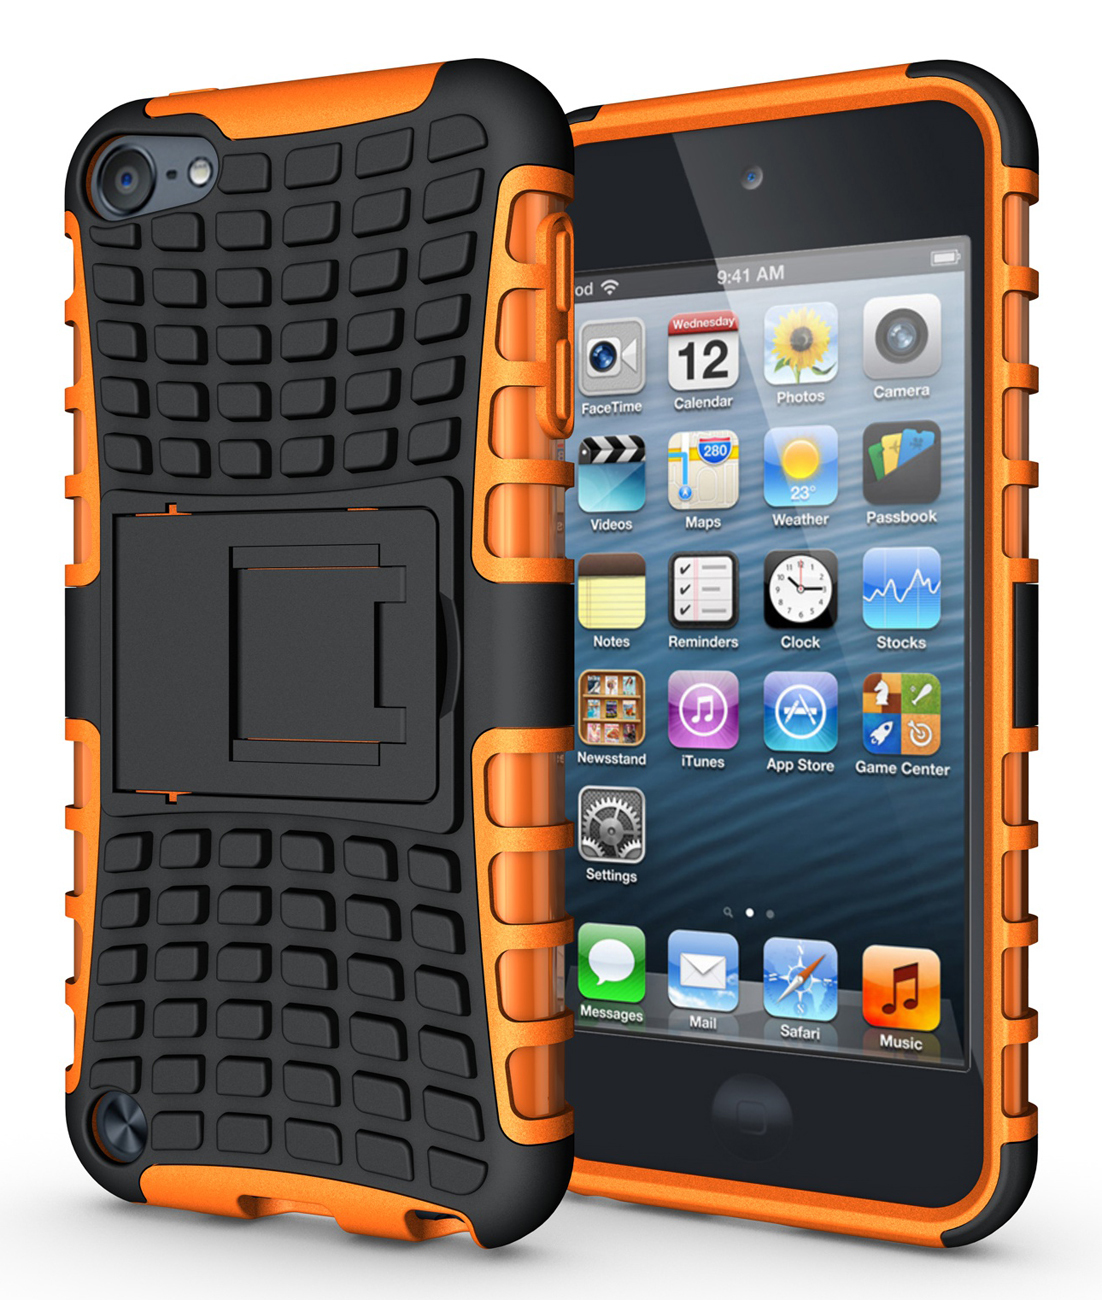 Kstand hard soft rubber hybrid case cover for apple ipod touch 6th gen orange p20151206153158119